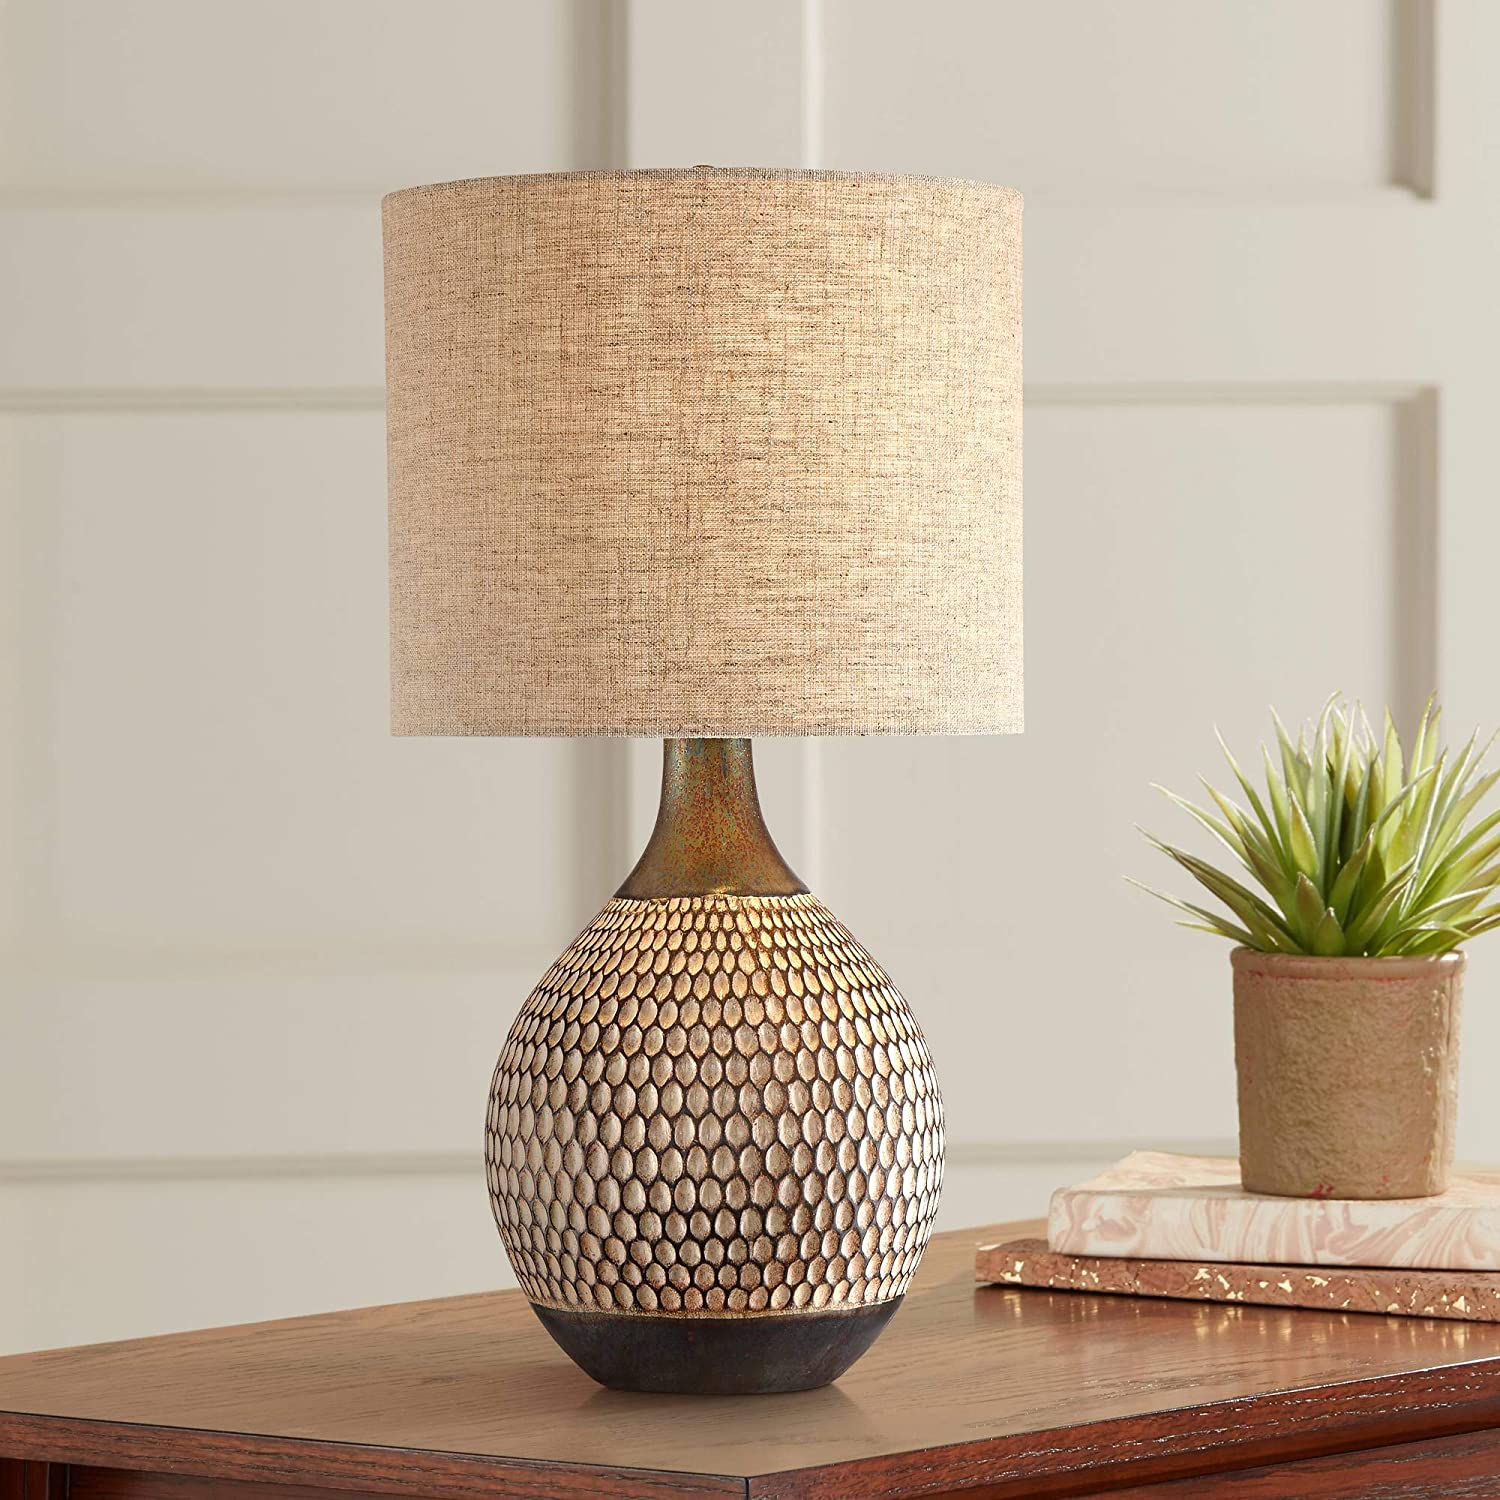 Emma Mid Century Modern Accent Table Lamp Brown Ceramic Drum Shade for Living Room Bedroom Bedside Nightstand Office Family - 360 Lighting